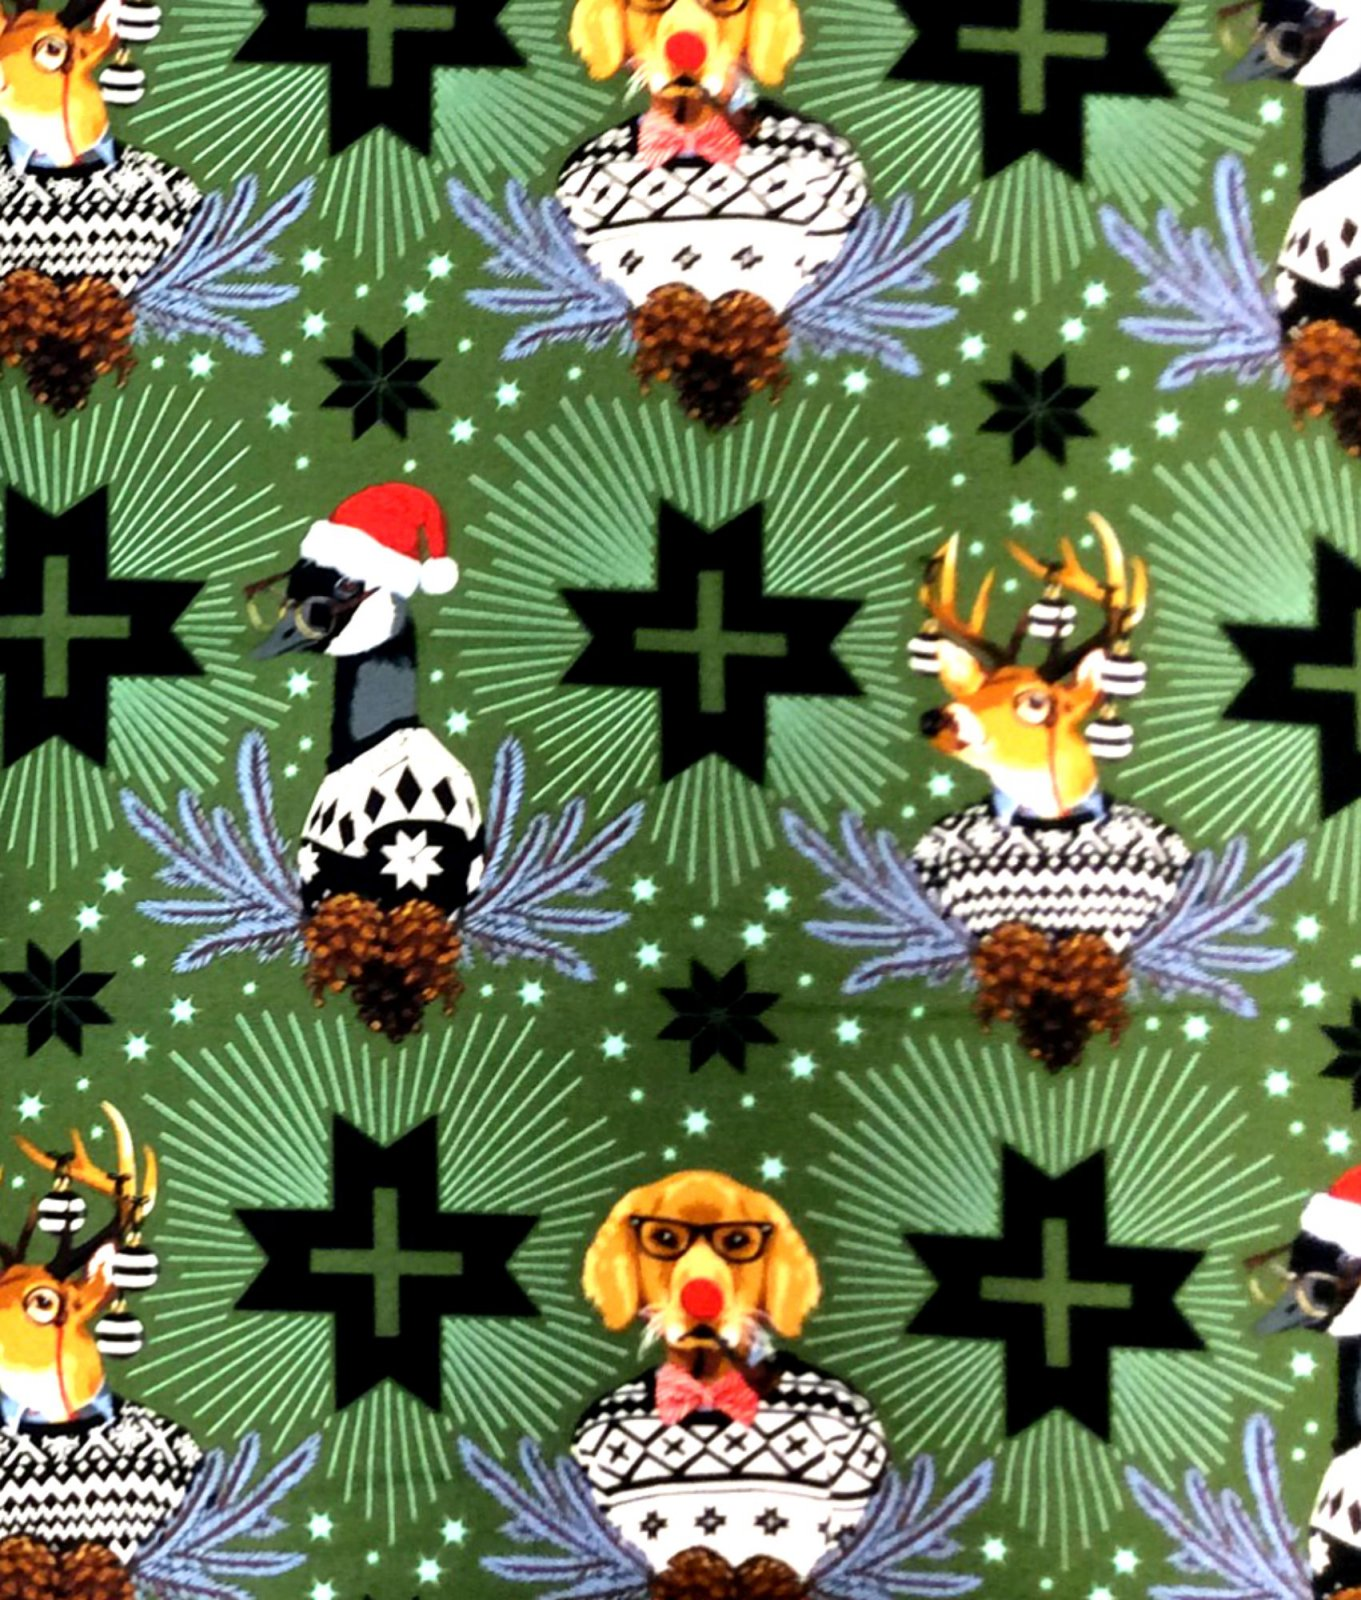 Dogs in Christmas Sweaters Tula Pink Anthropomorphic Puppy Dogs Cotton Quilt Fabric FT147